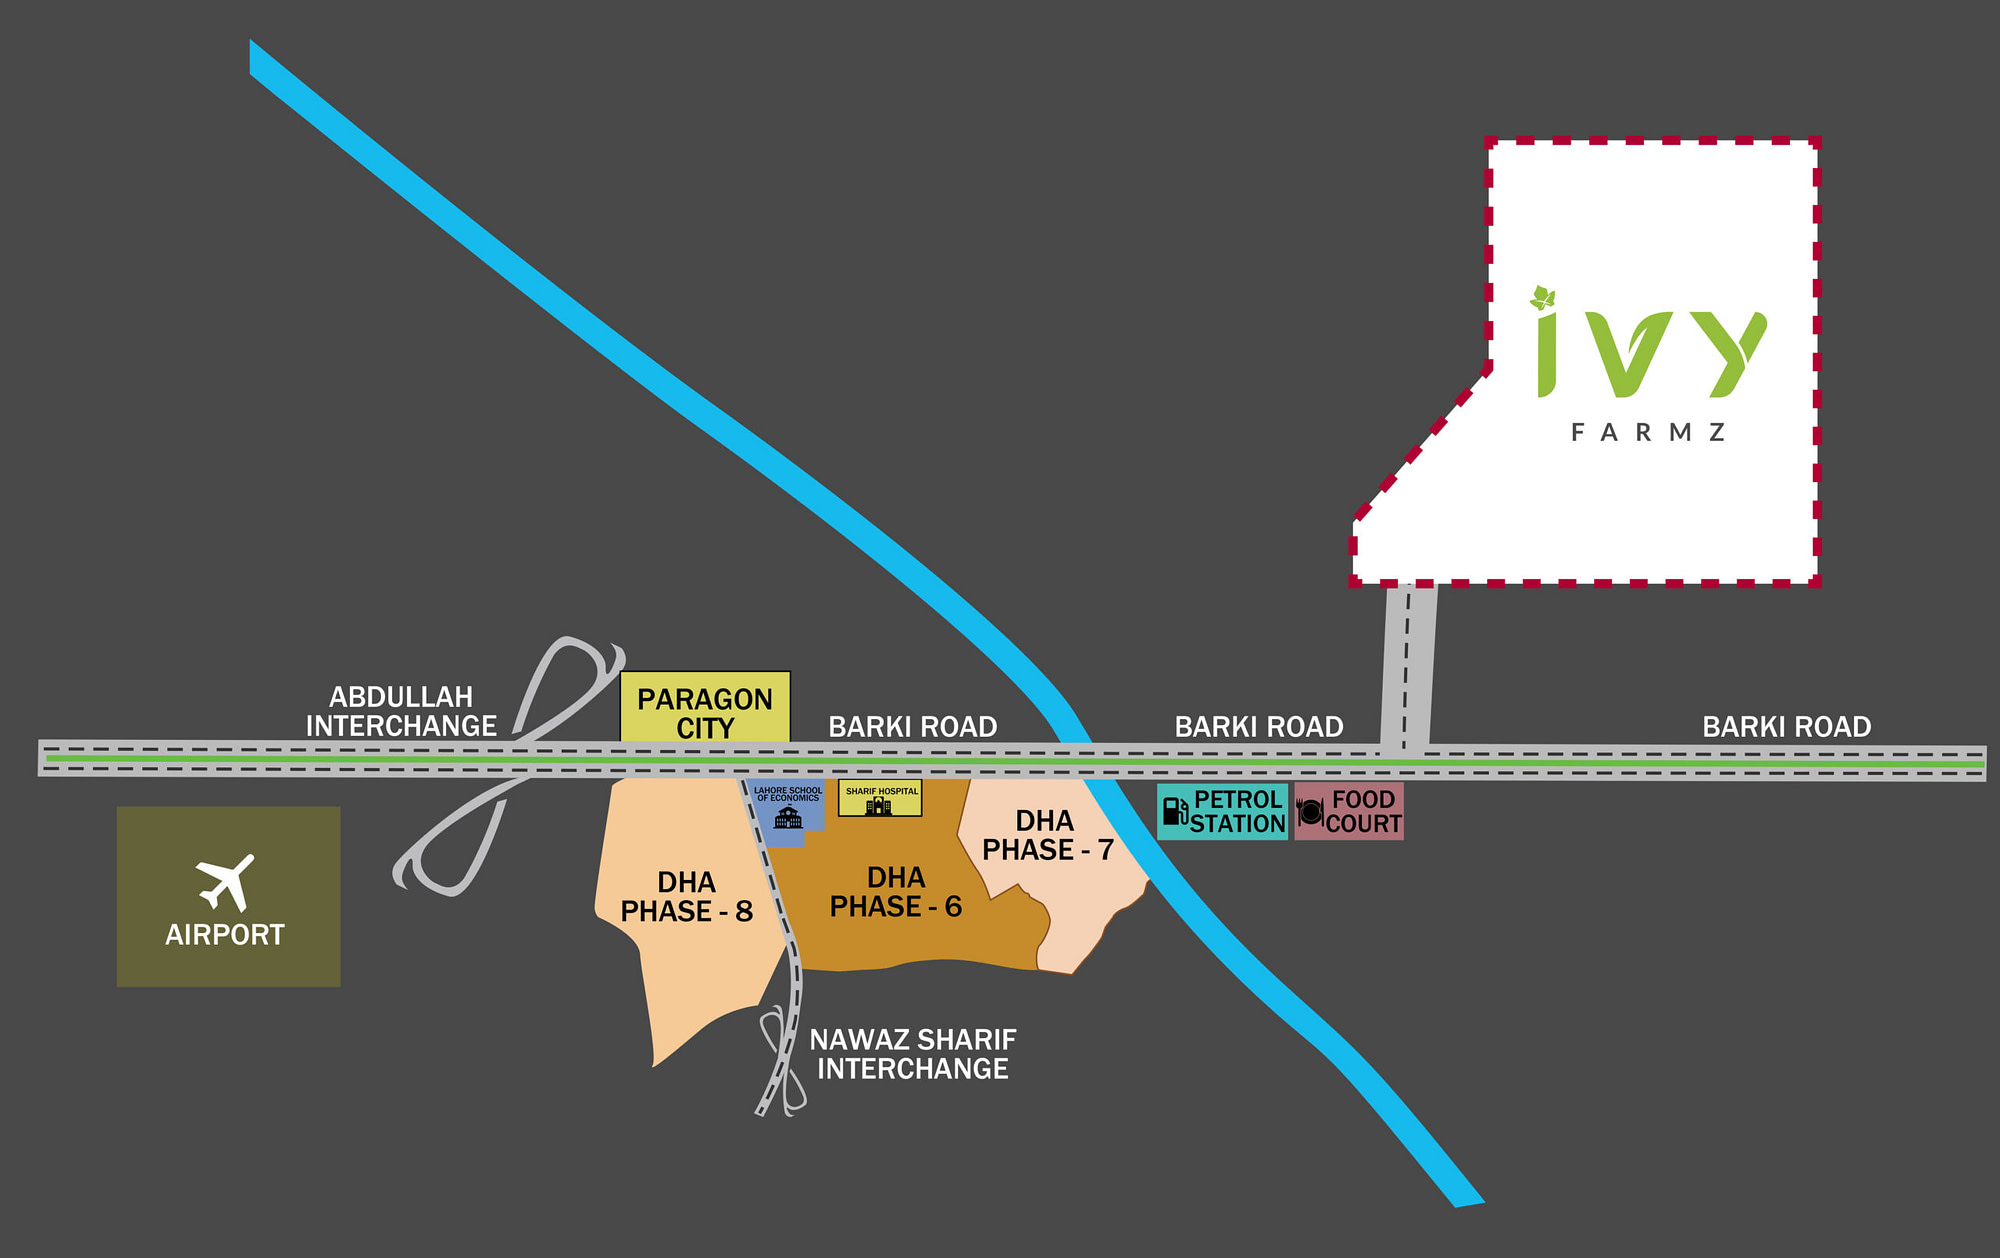 IVY Farms location-map